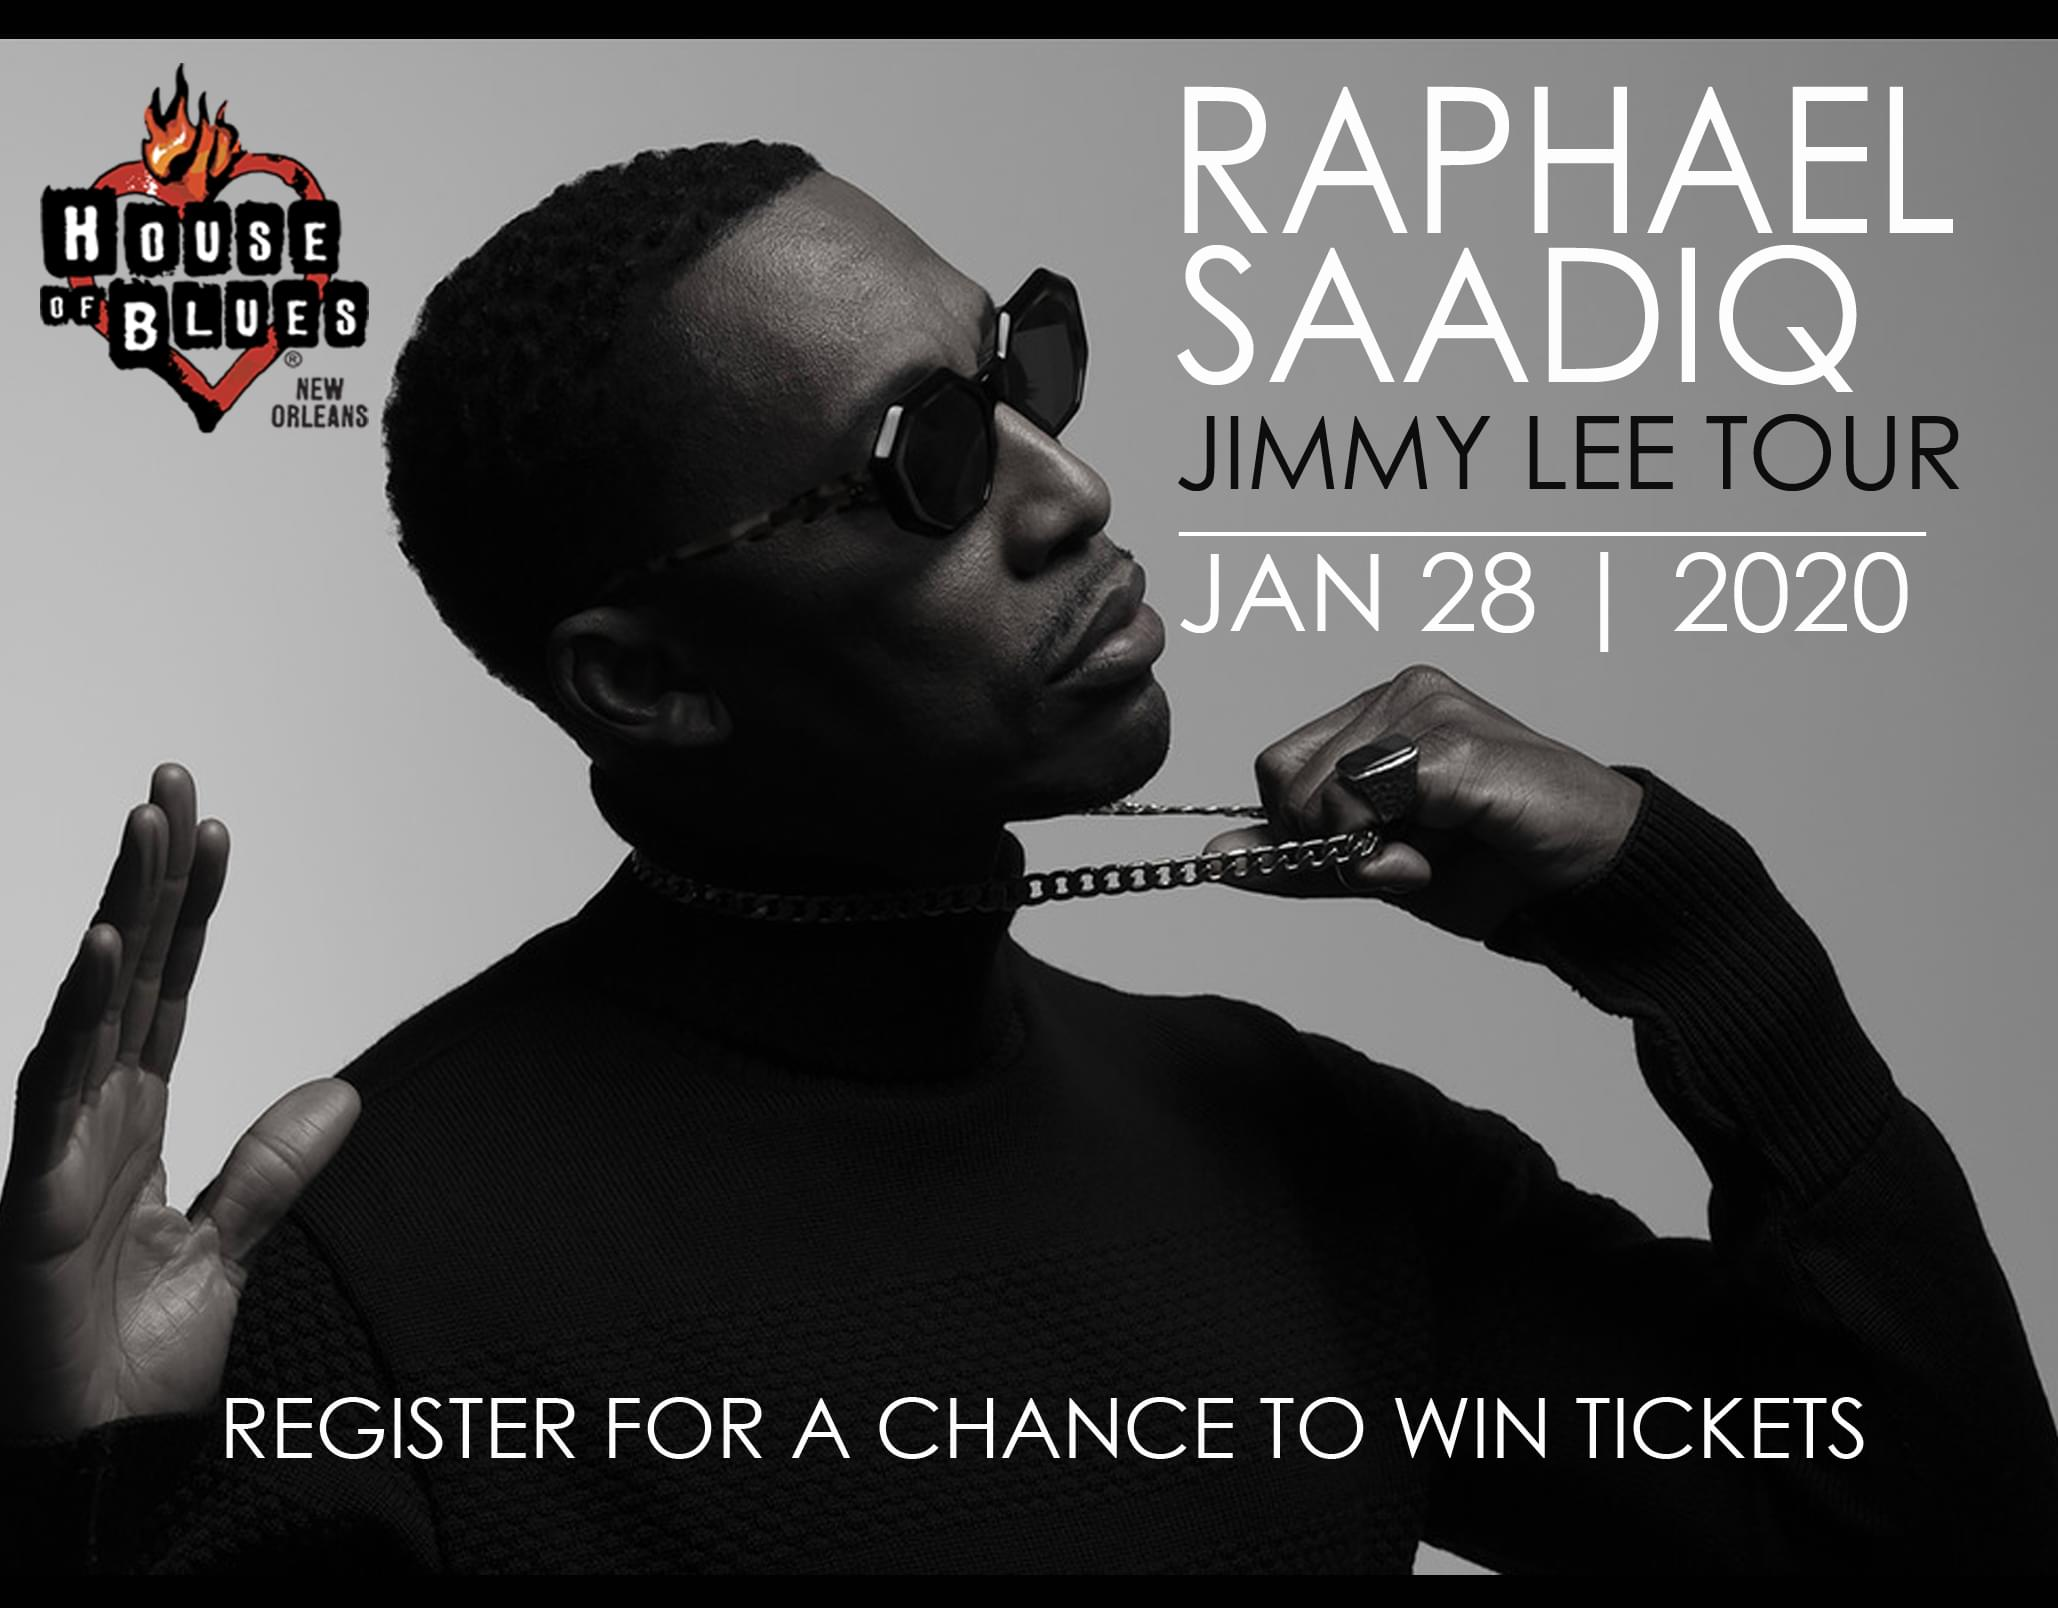 Win Tickets to see Raphael Saadiq